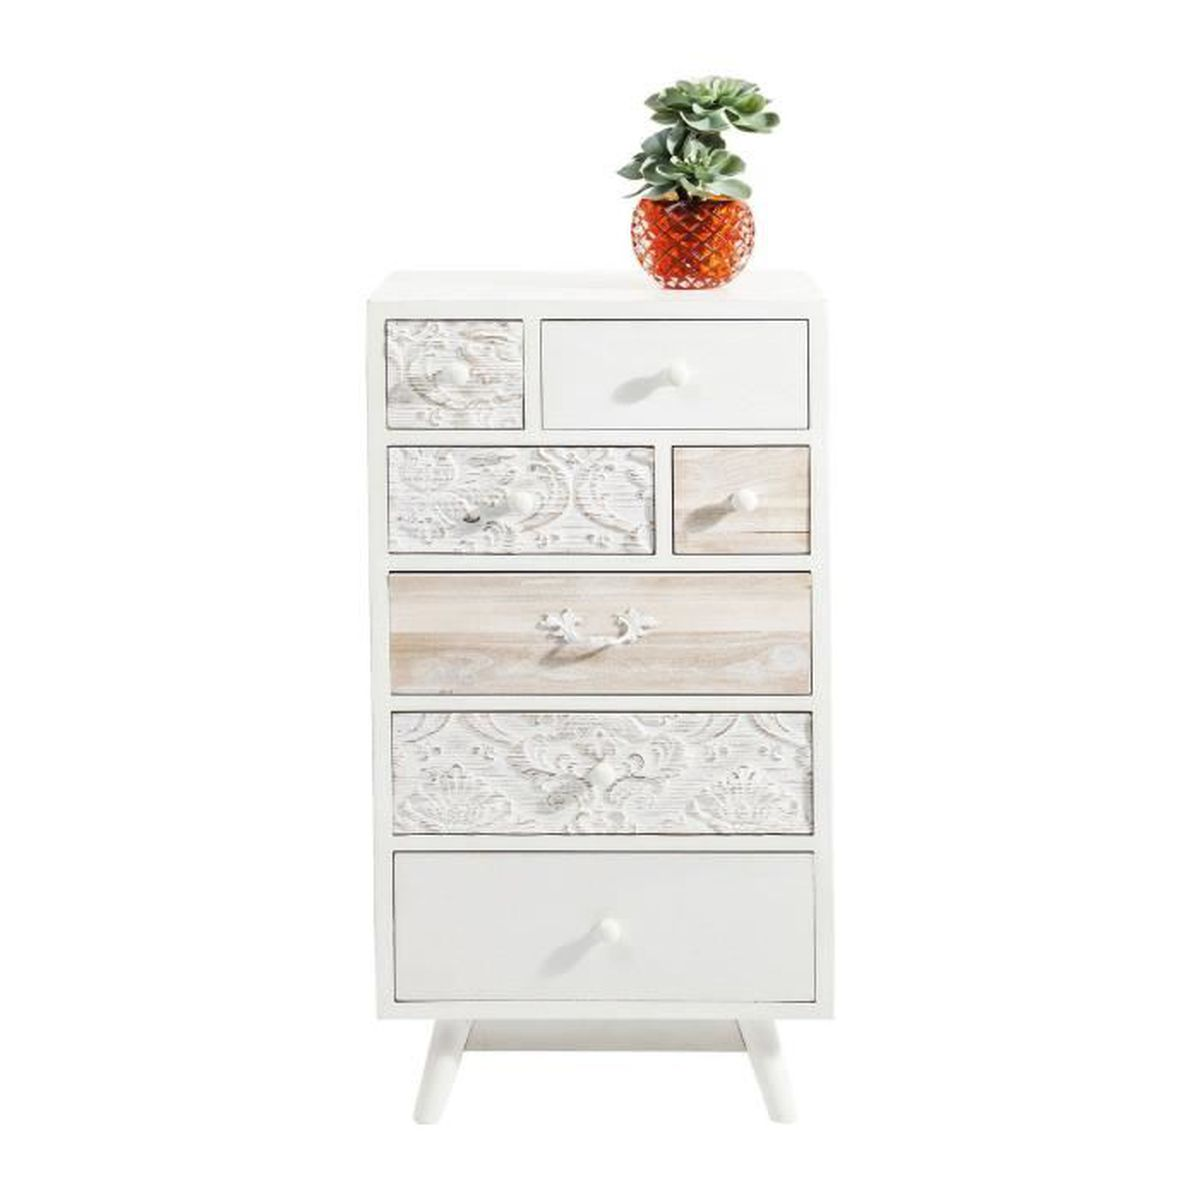 Commode haute sweet home kare design achat vente for Meubles sweet home